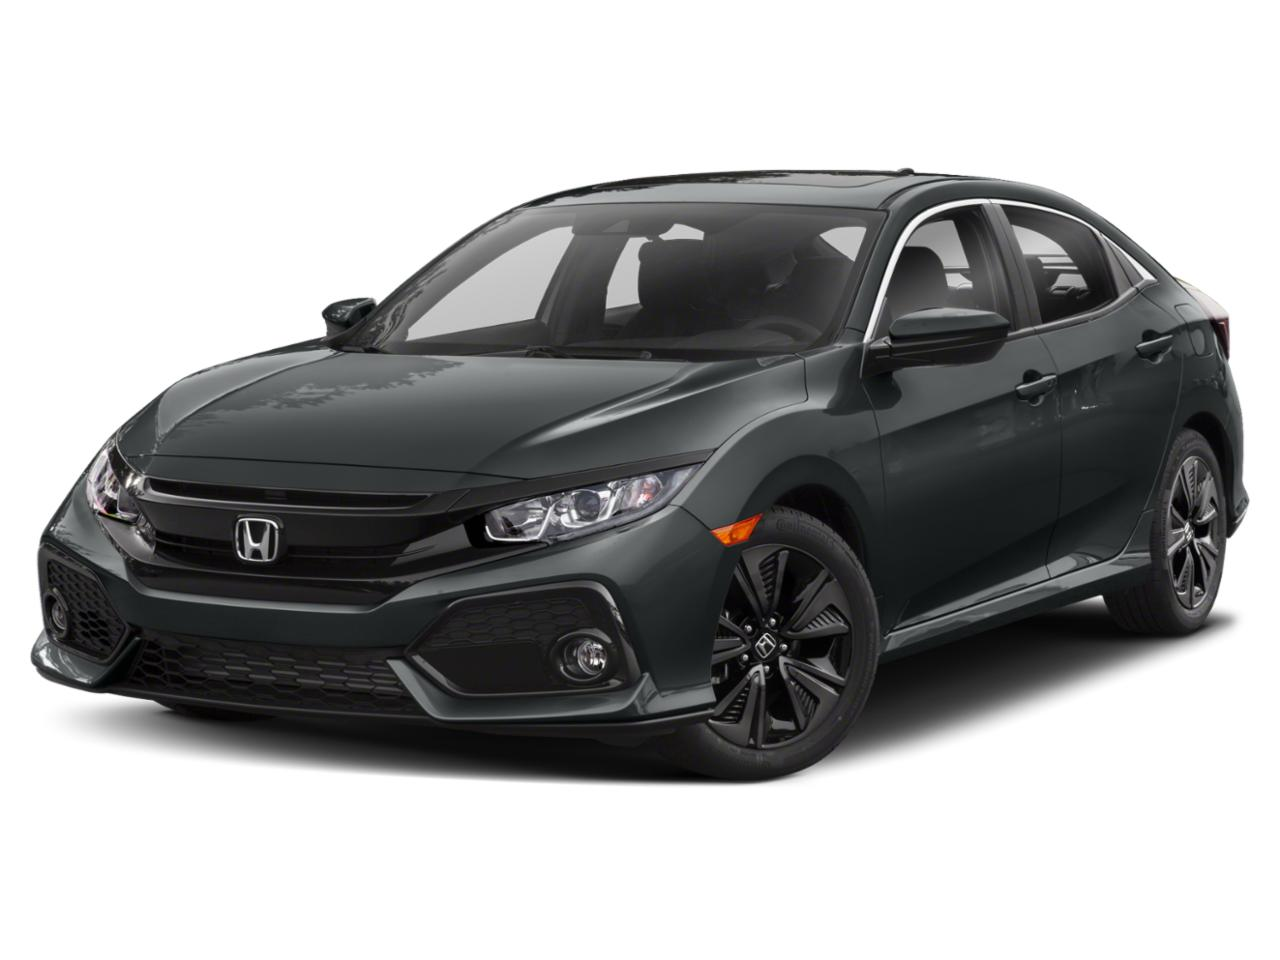 2019 Honda Civic Hatchback Vehicle Photo in Medina, OH 44256